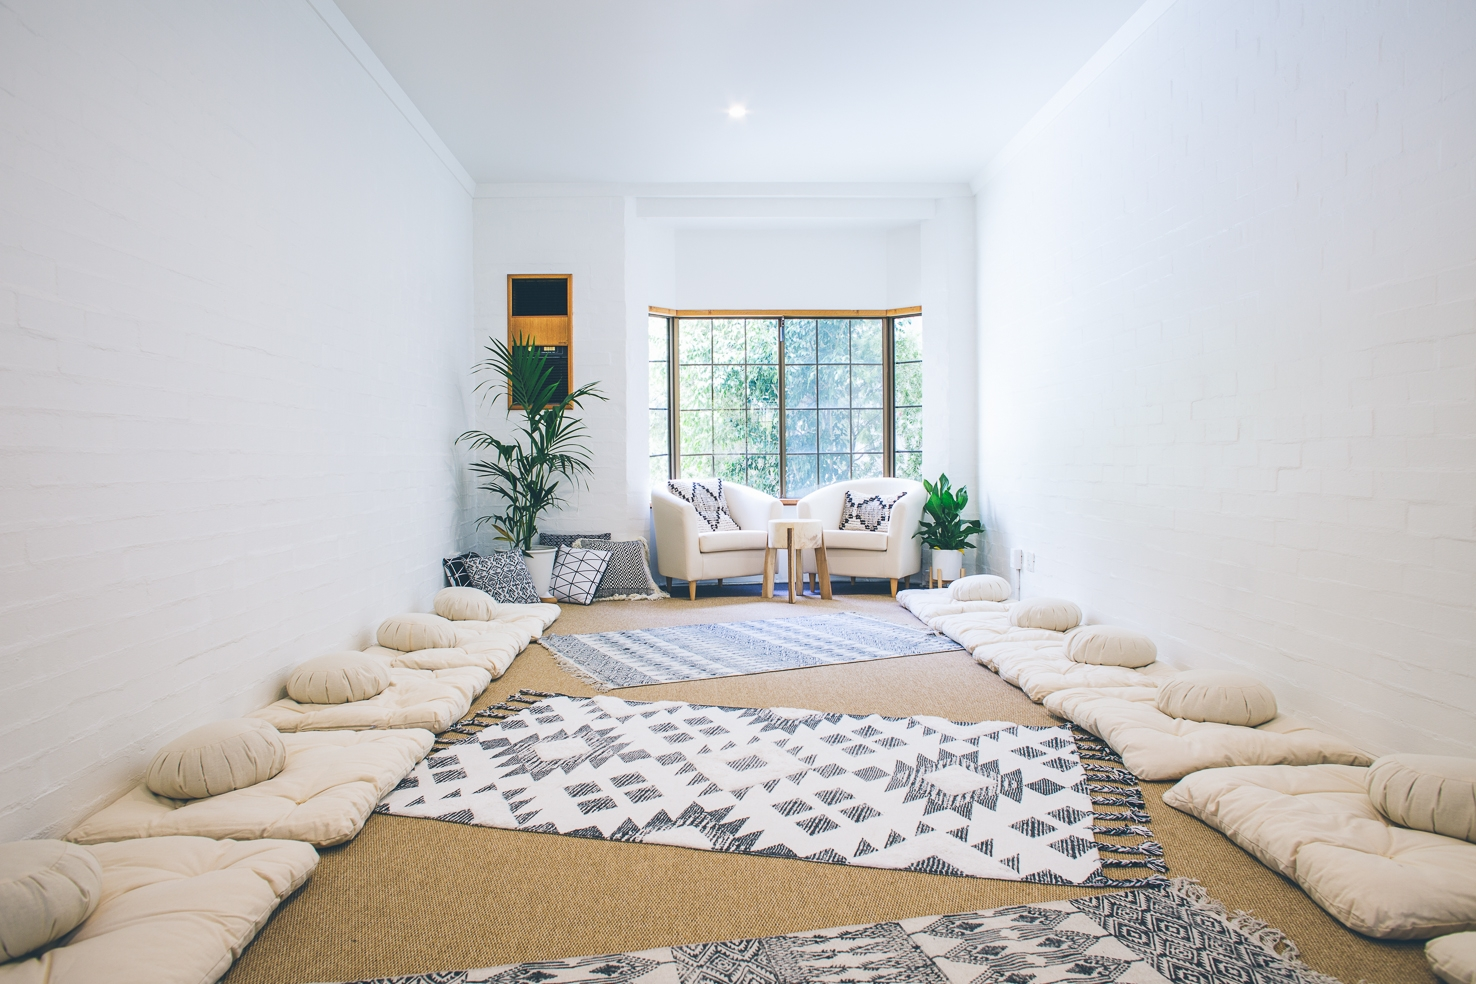 Exhale Mindfulness Studio - West Perth  From: $60.00